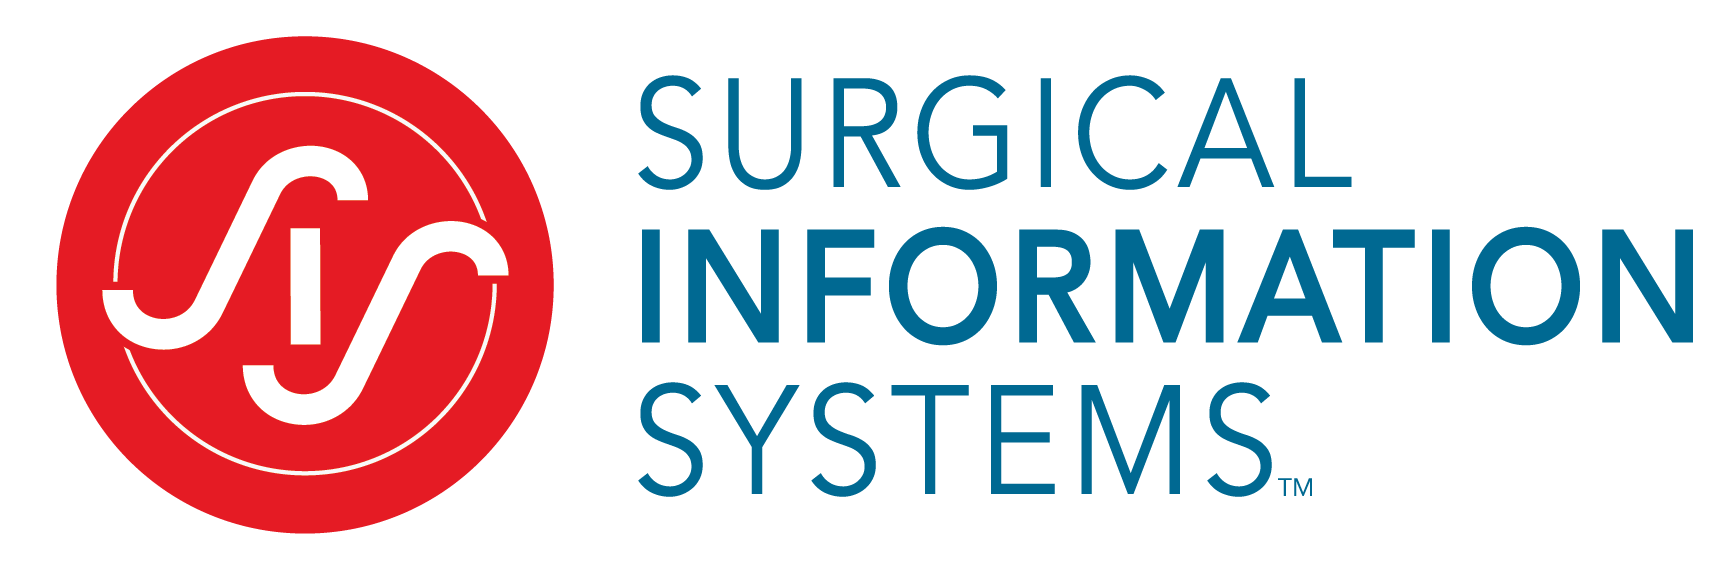 Surgical Information Systems Job Openings